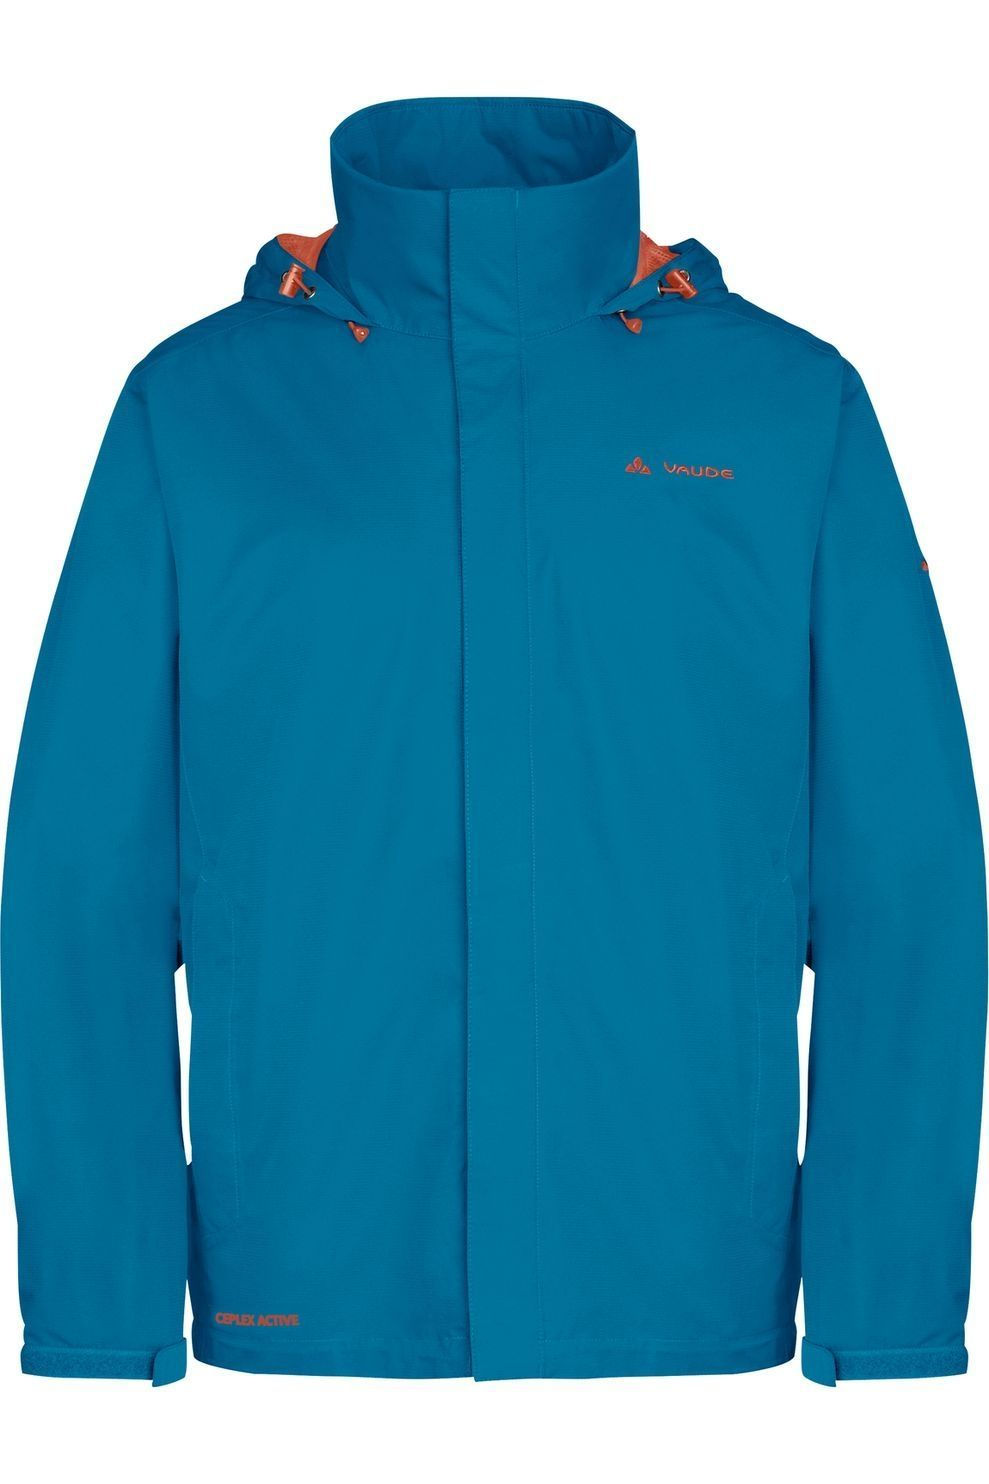 VAUDE Jas Escape Light voor heren - Blauw/Oranje - Maten: S, M